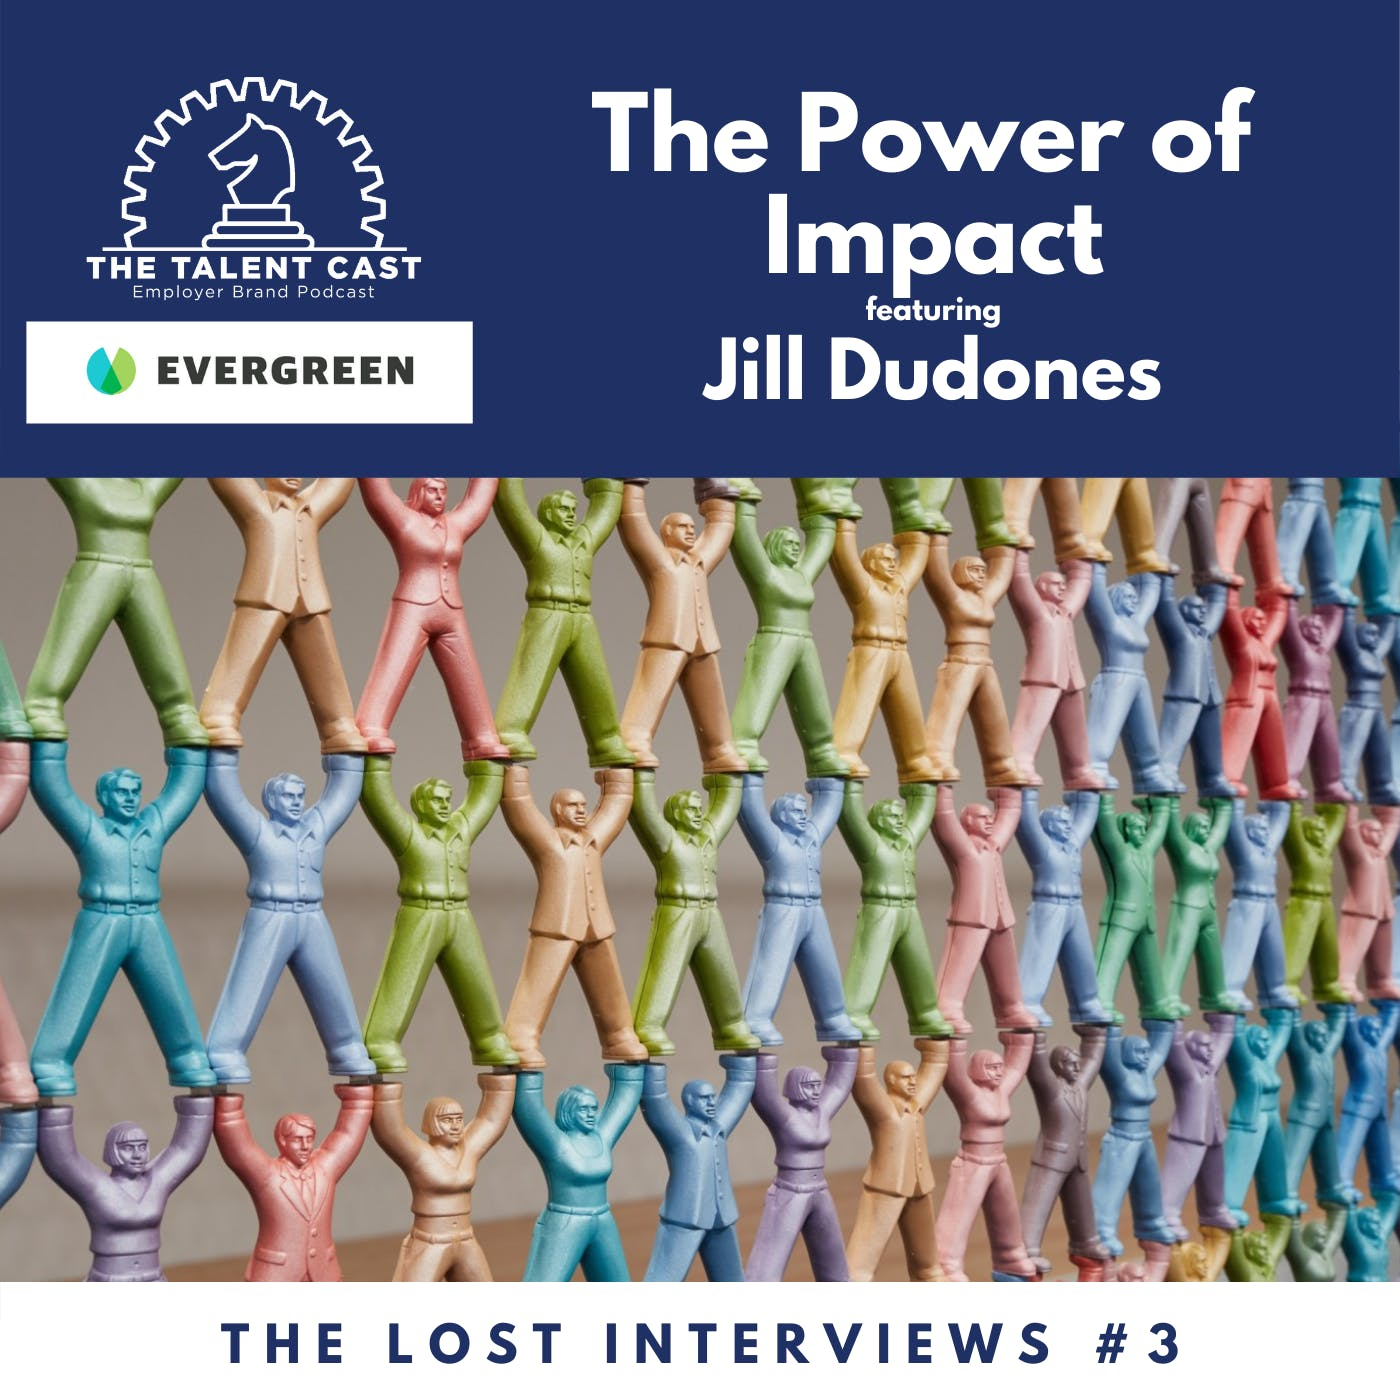 The Power of Impact: The Lost Interviews #3 - Jill Dudones